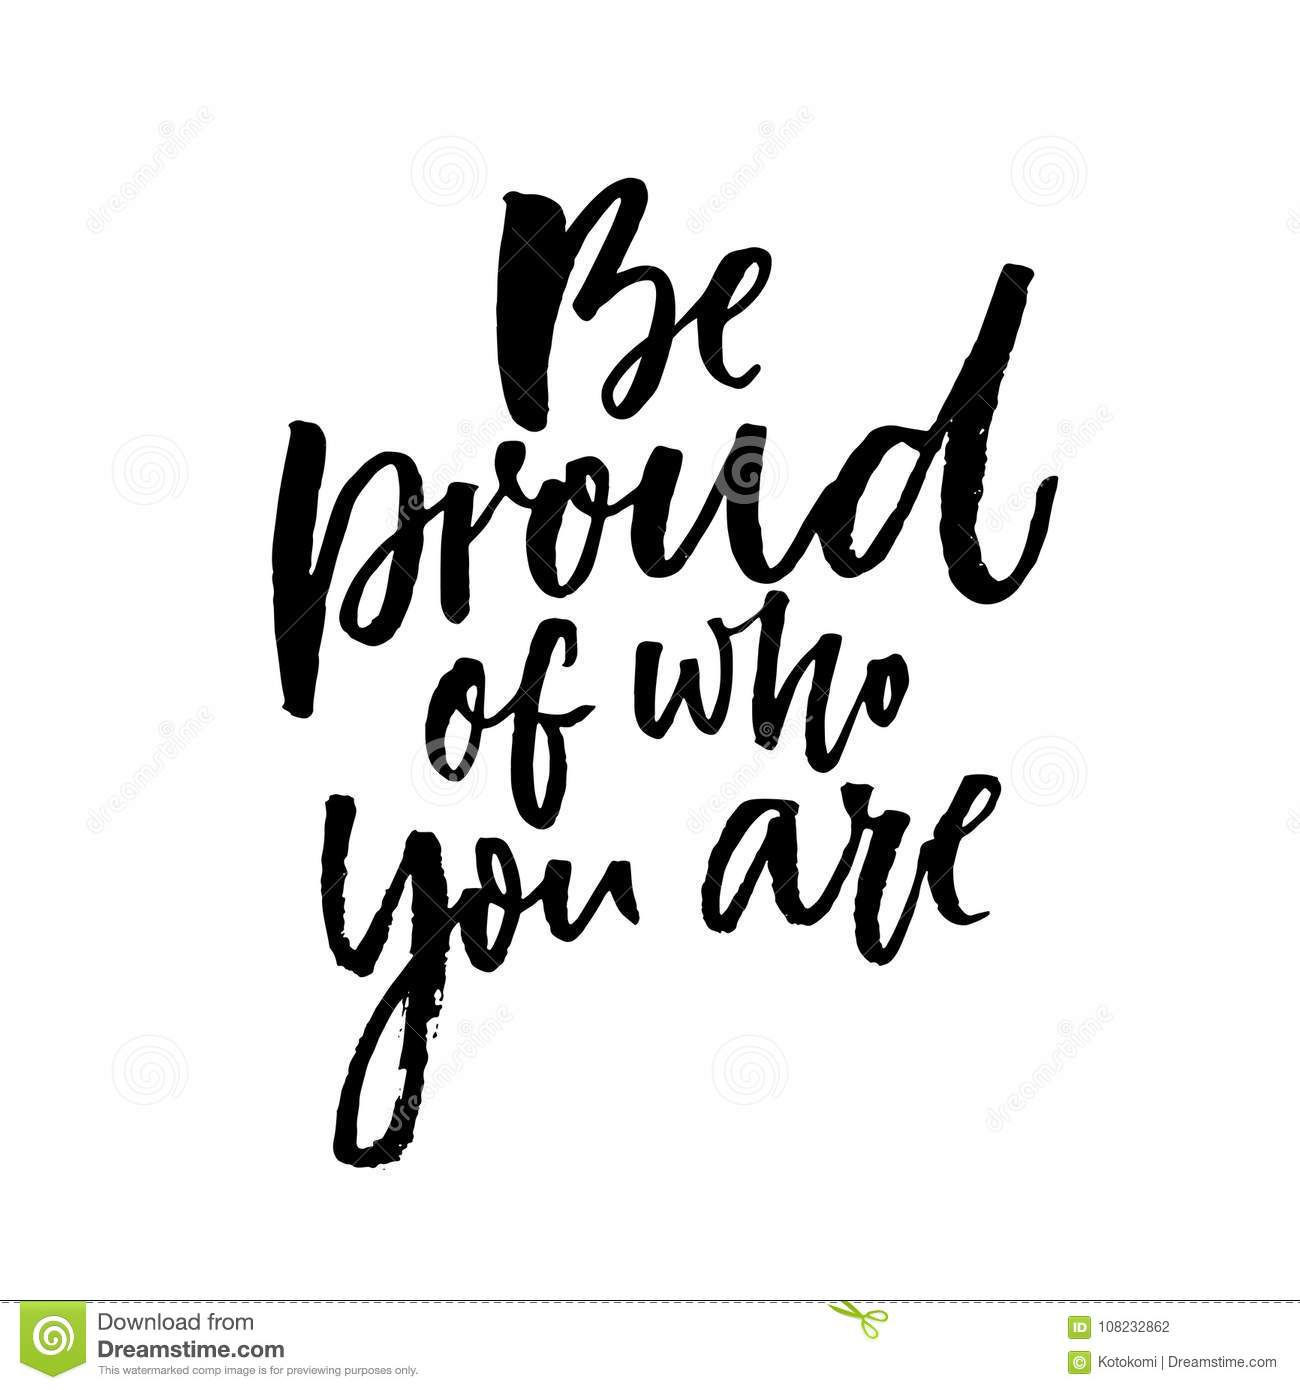 be proud of who you are motivational quote about being yourself